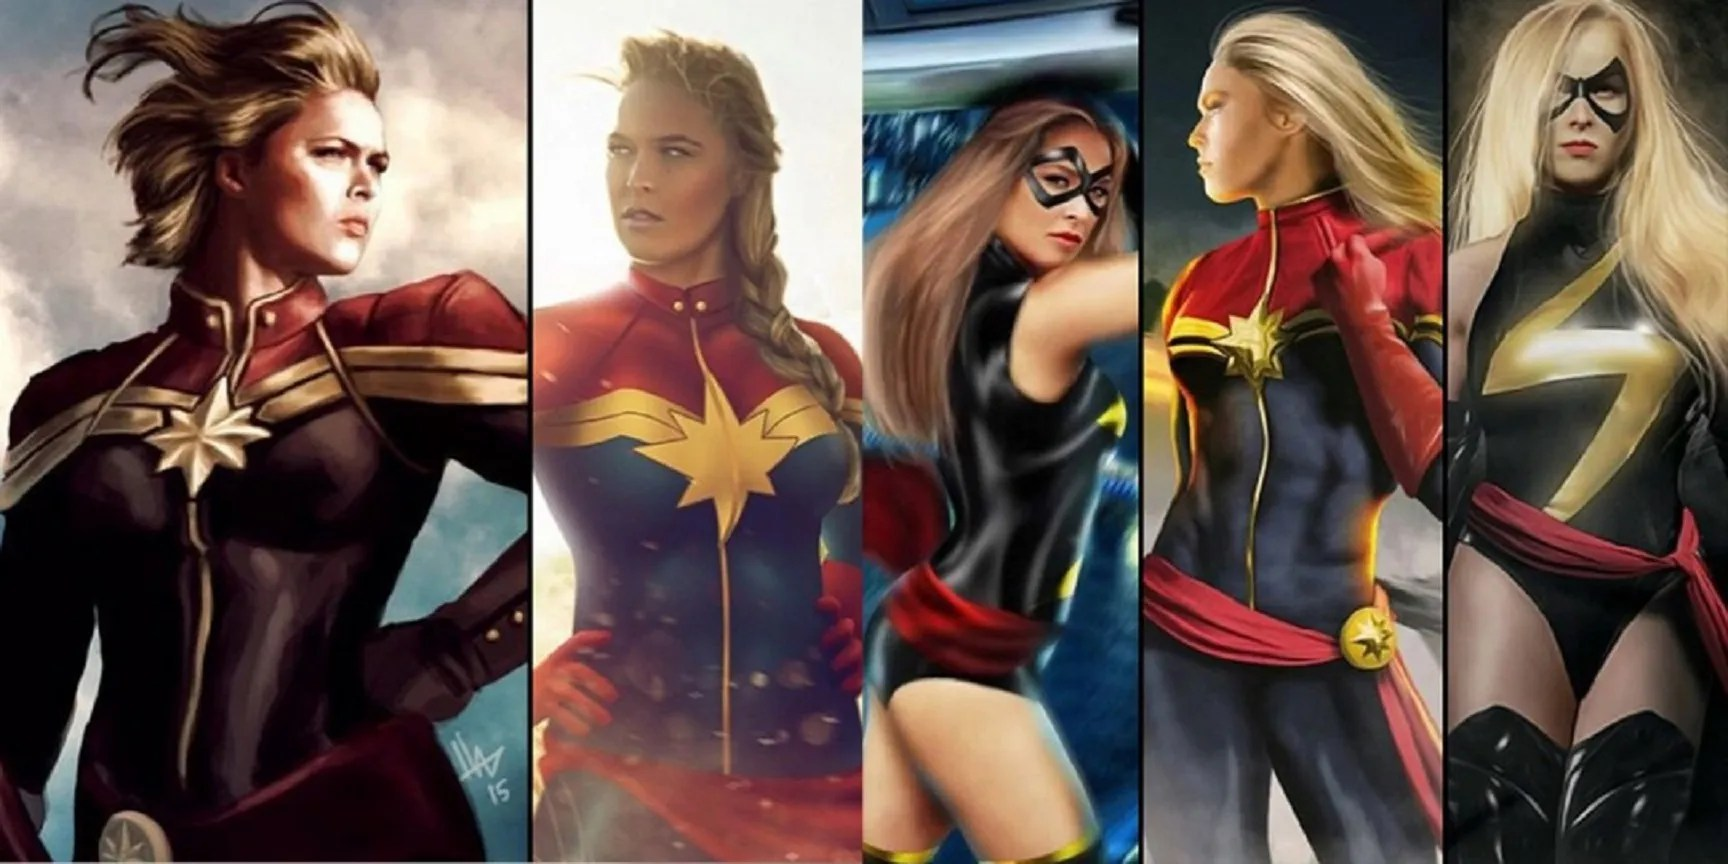 Ronda Rousey Offered Role of Captain Marvel in Adult Film